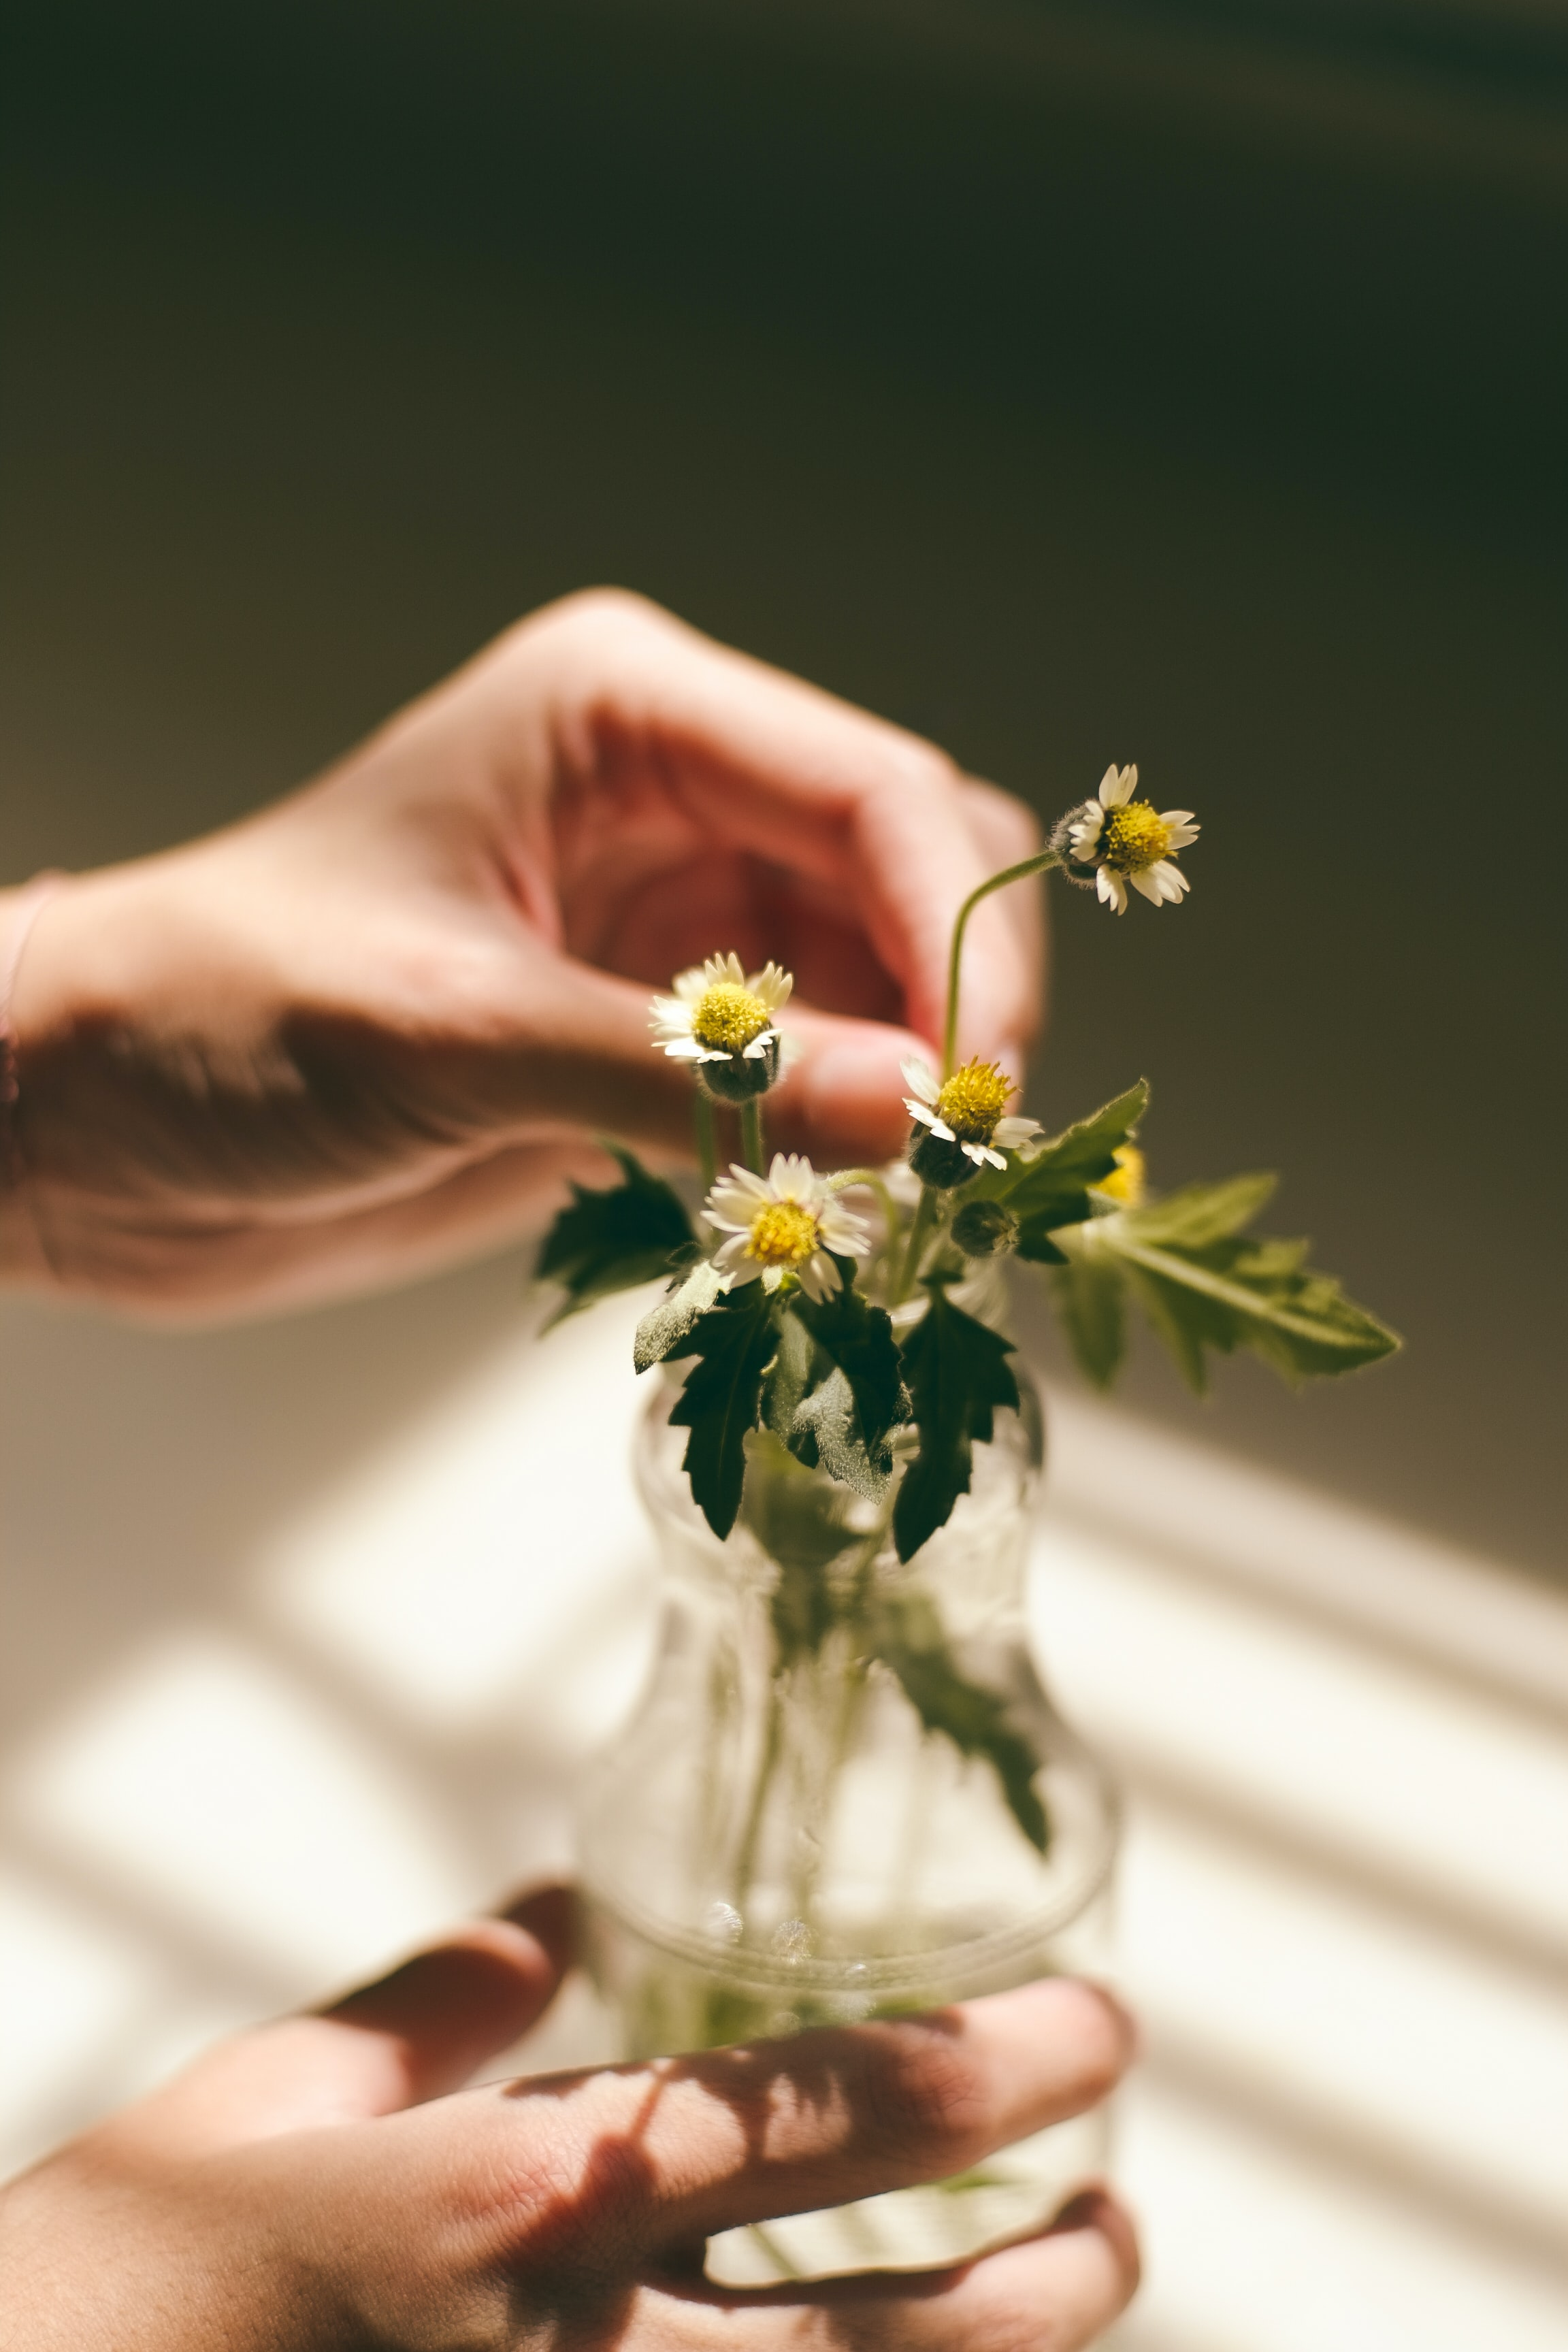 person's hands holding white daisy flower's leaf and clear glass vase